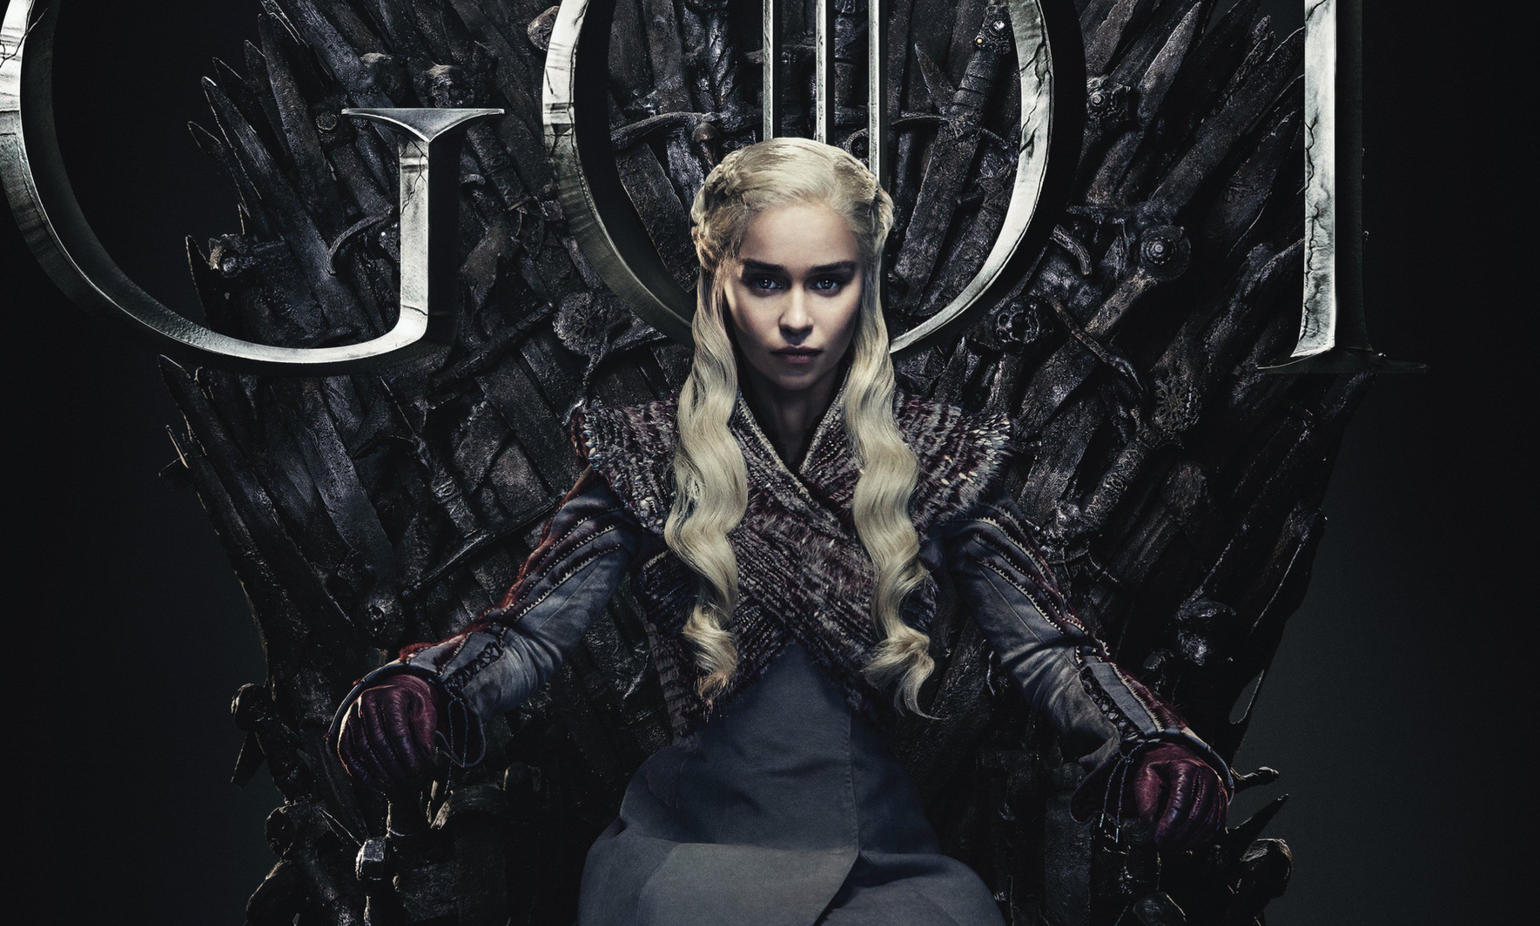 critique-dernière-saison-8-game-of-thrones-got